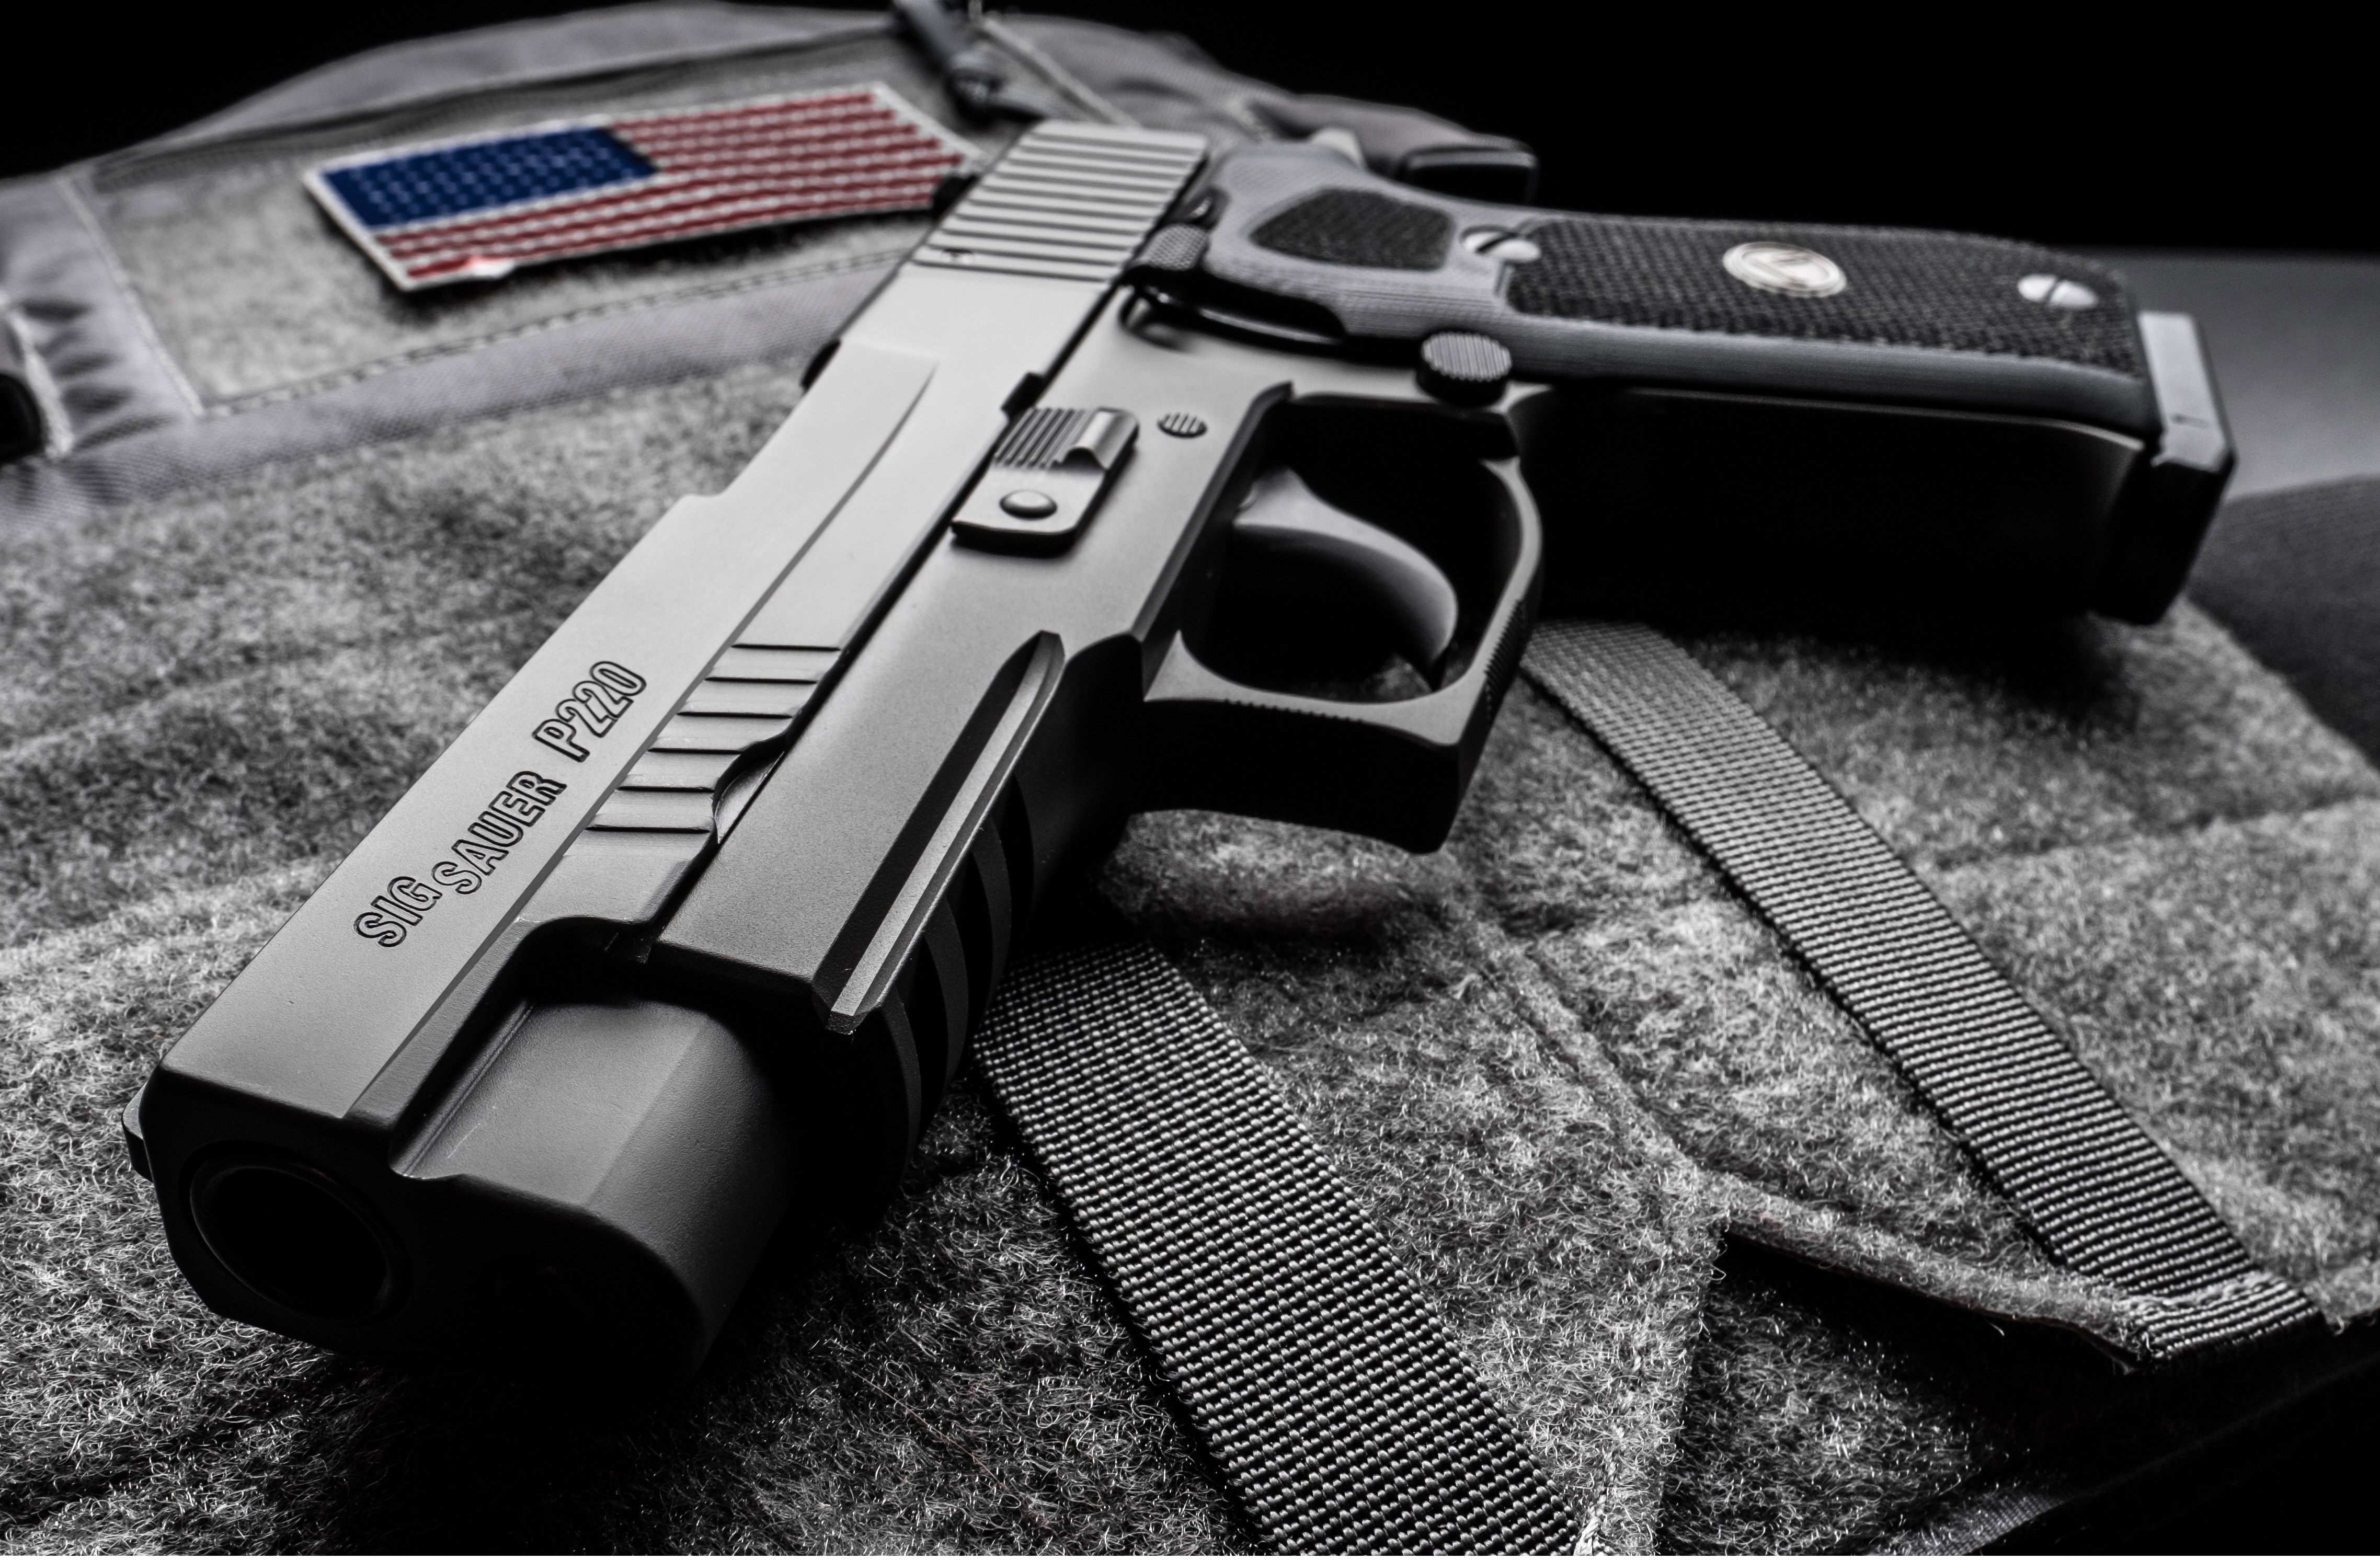 SIG SAUER SHOWS SUPPORT FOR 10MM IN P220 LEGION SERIES OF HANDGUNS